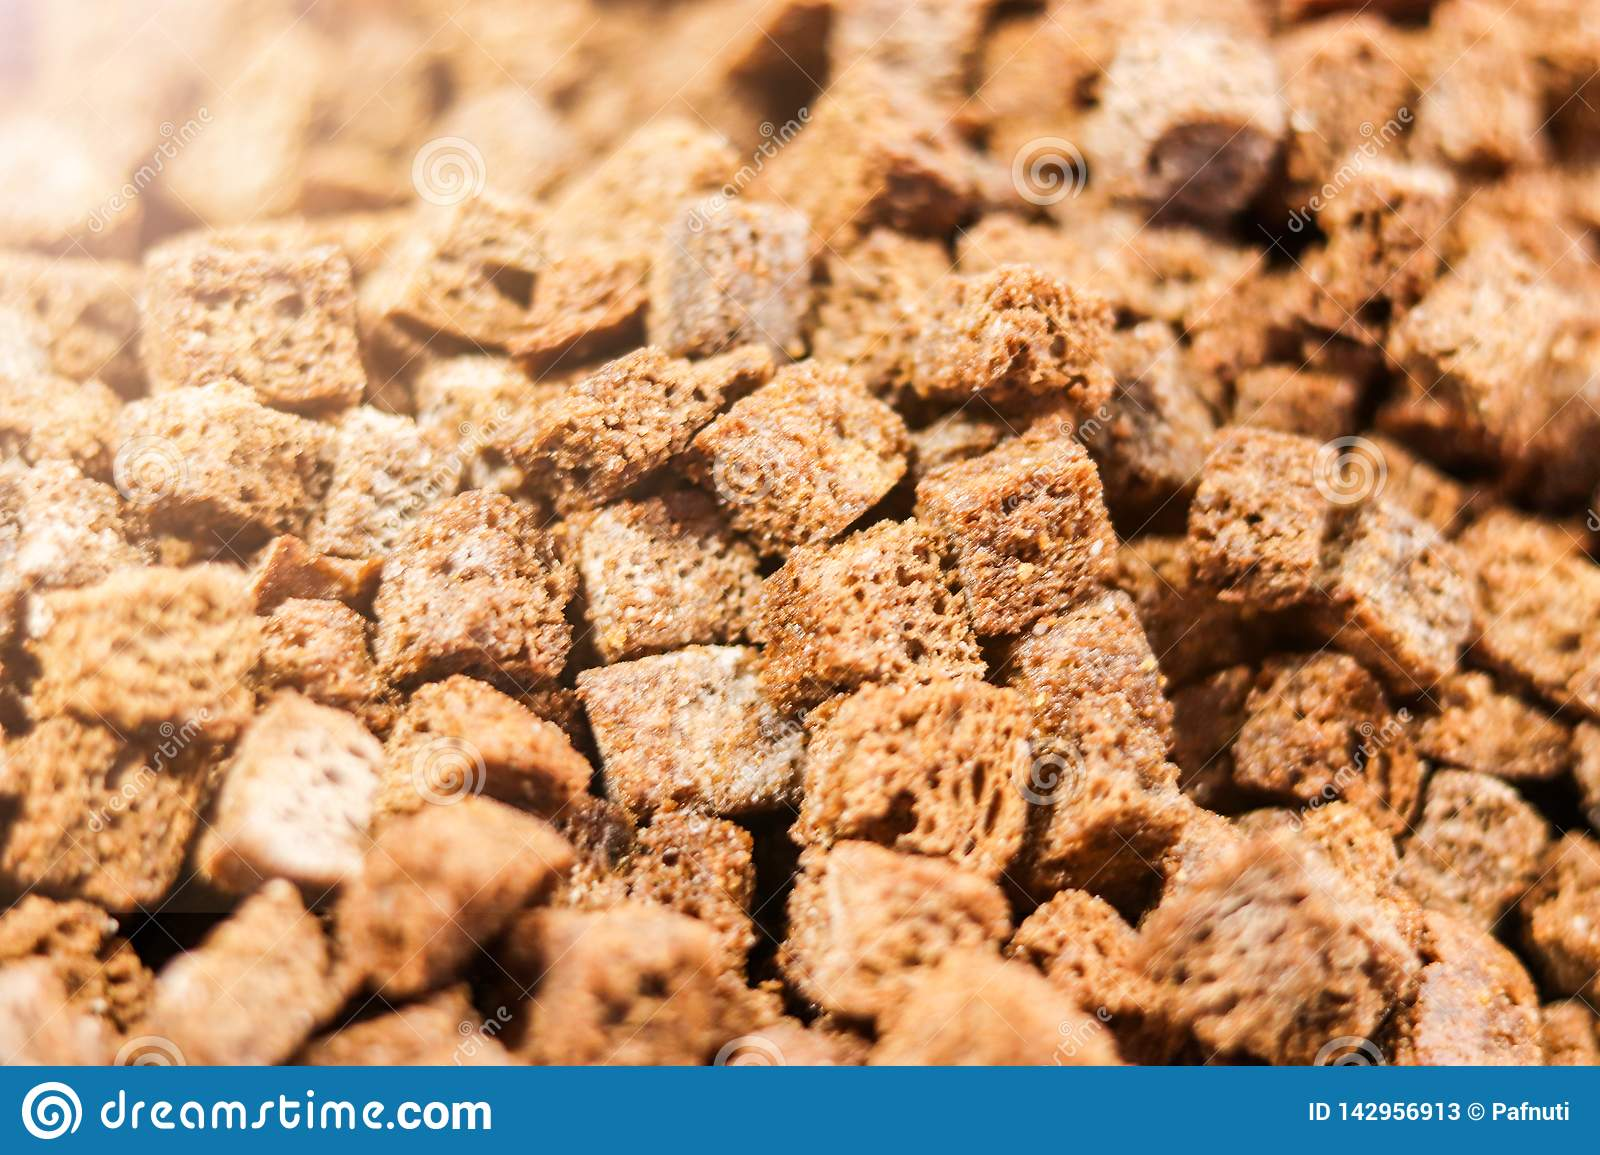 Fried toast or croutons from rye bread.